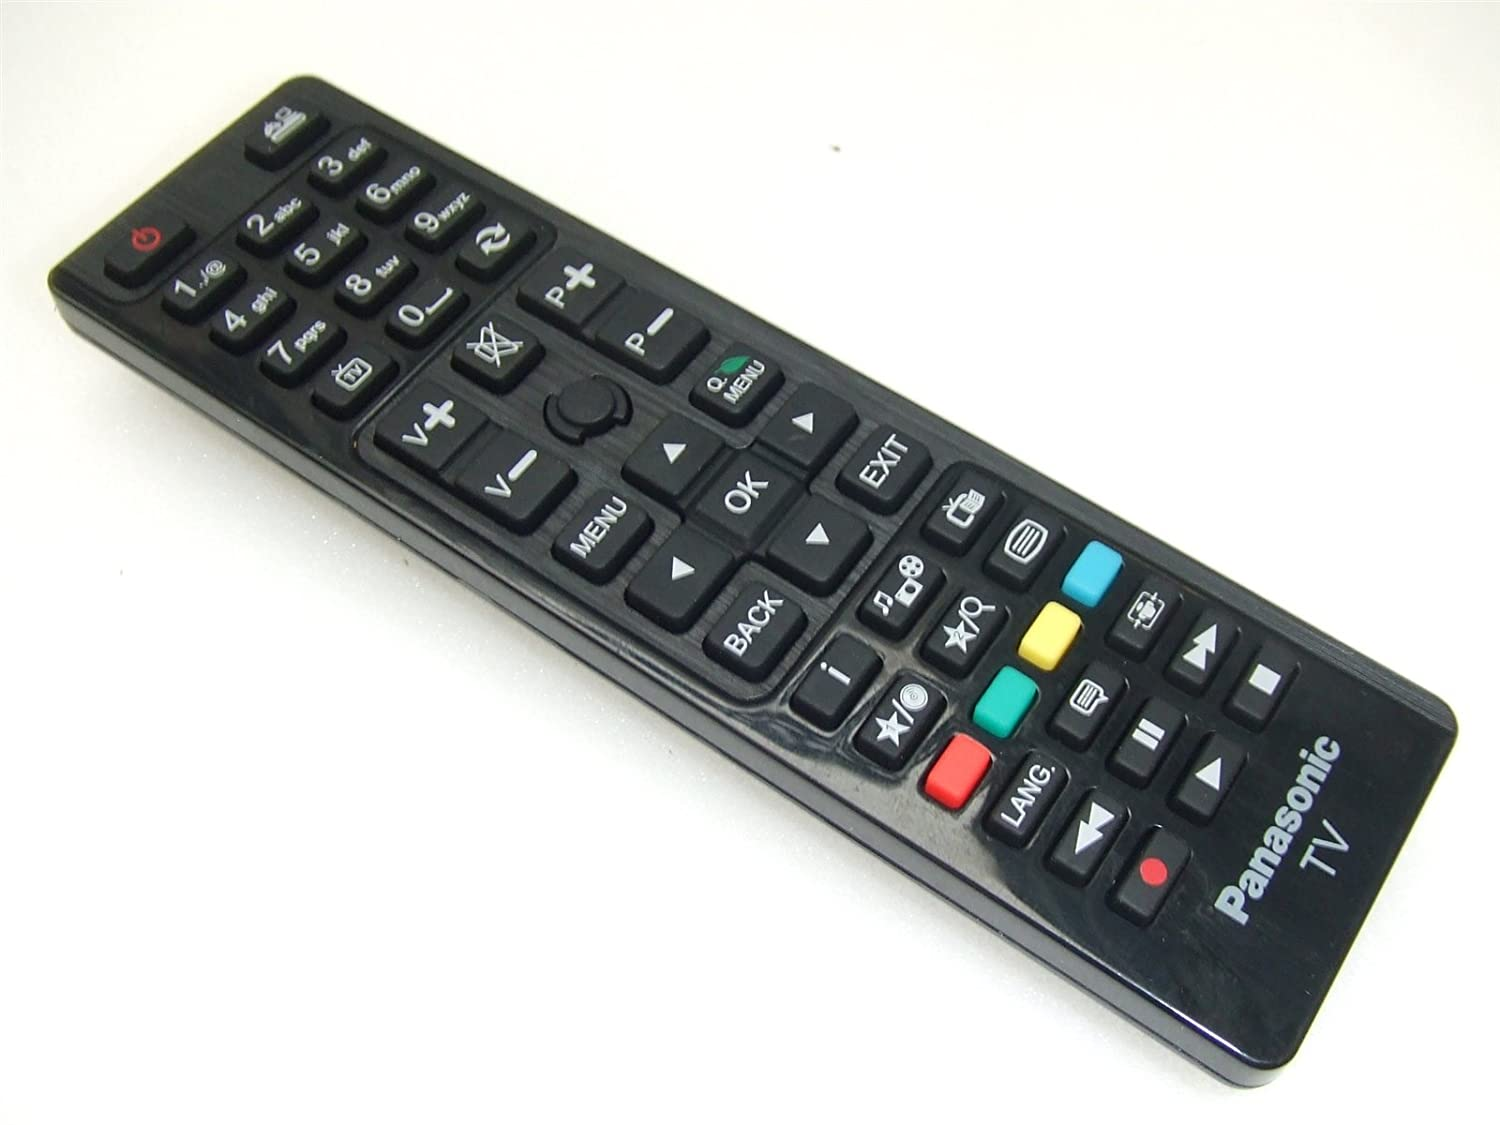 panasonic tv remote control. genuine tv remote control panasonic rc48127 for: amazon.co.uk: electronics tv g